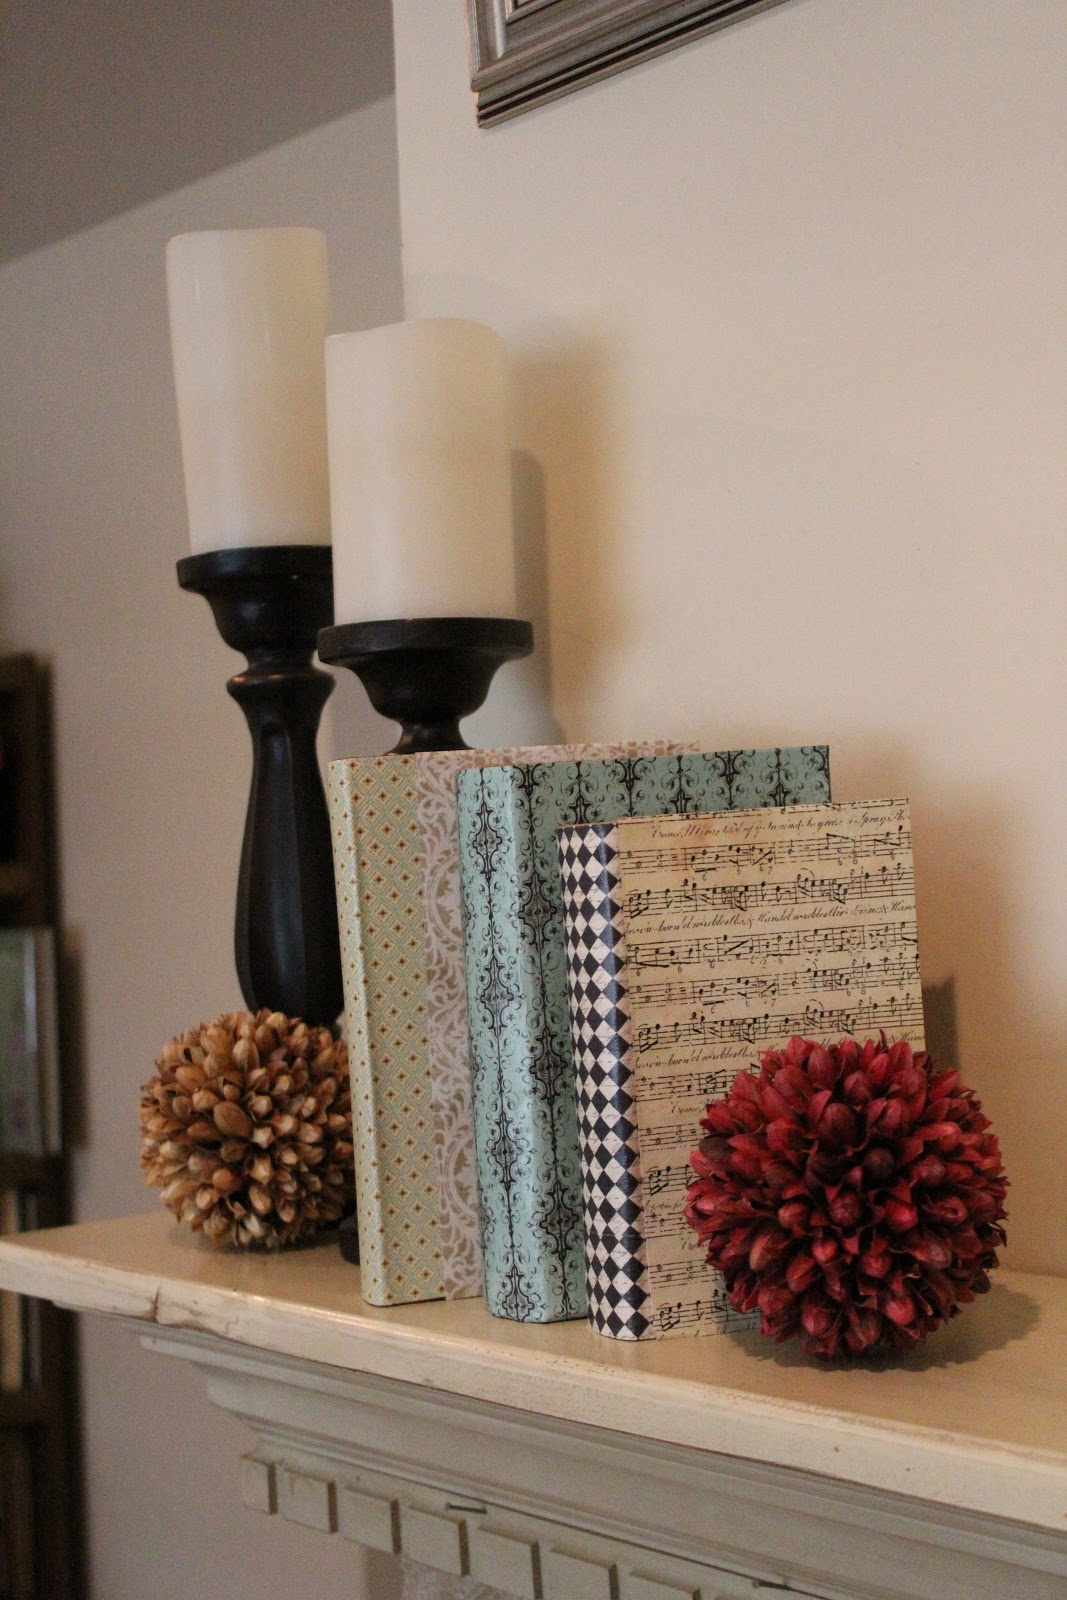 Uncategorized Book Decor mommy vignettes diy hardcover book decor